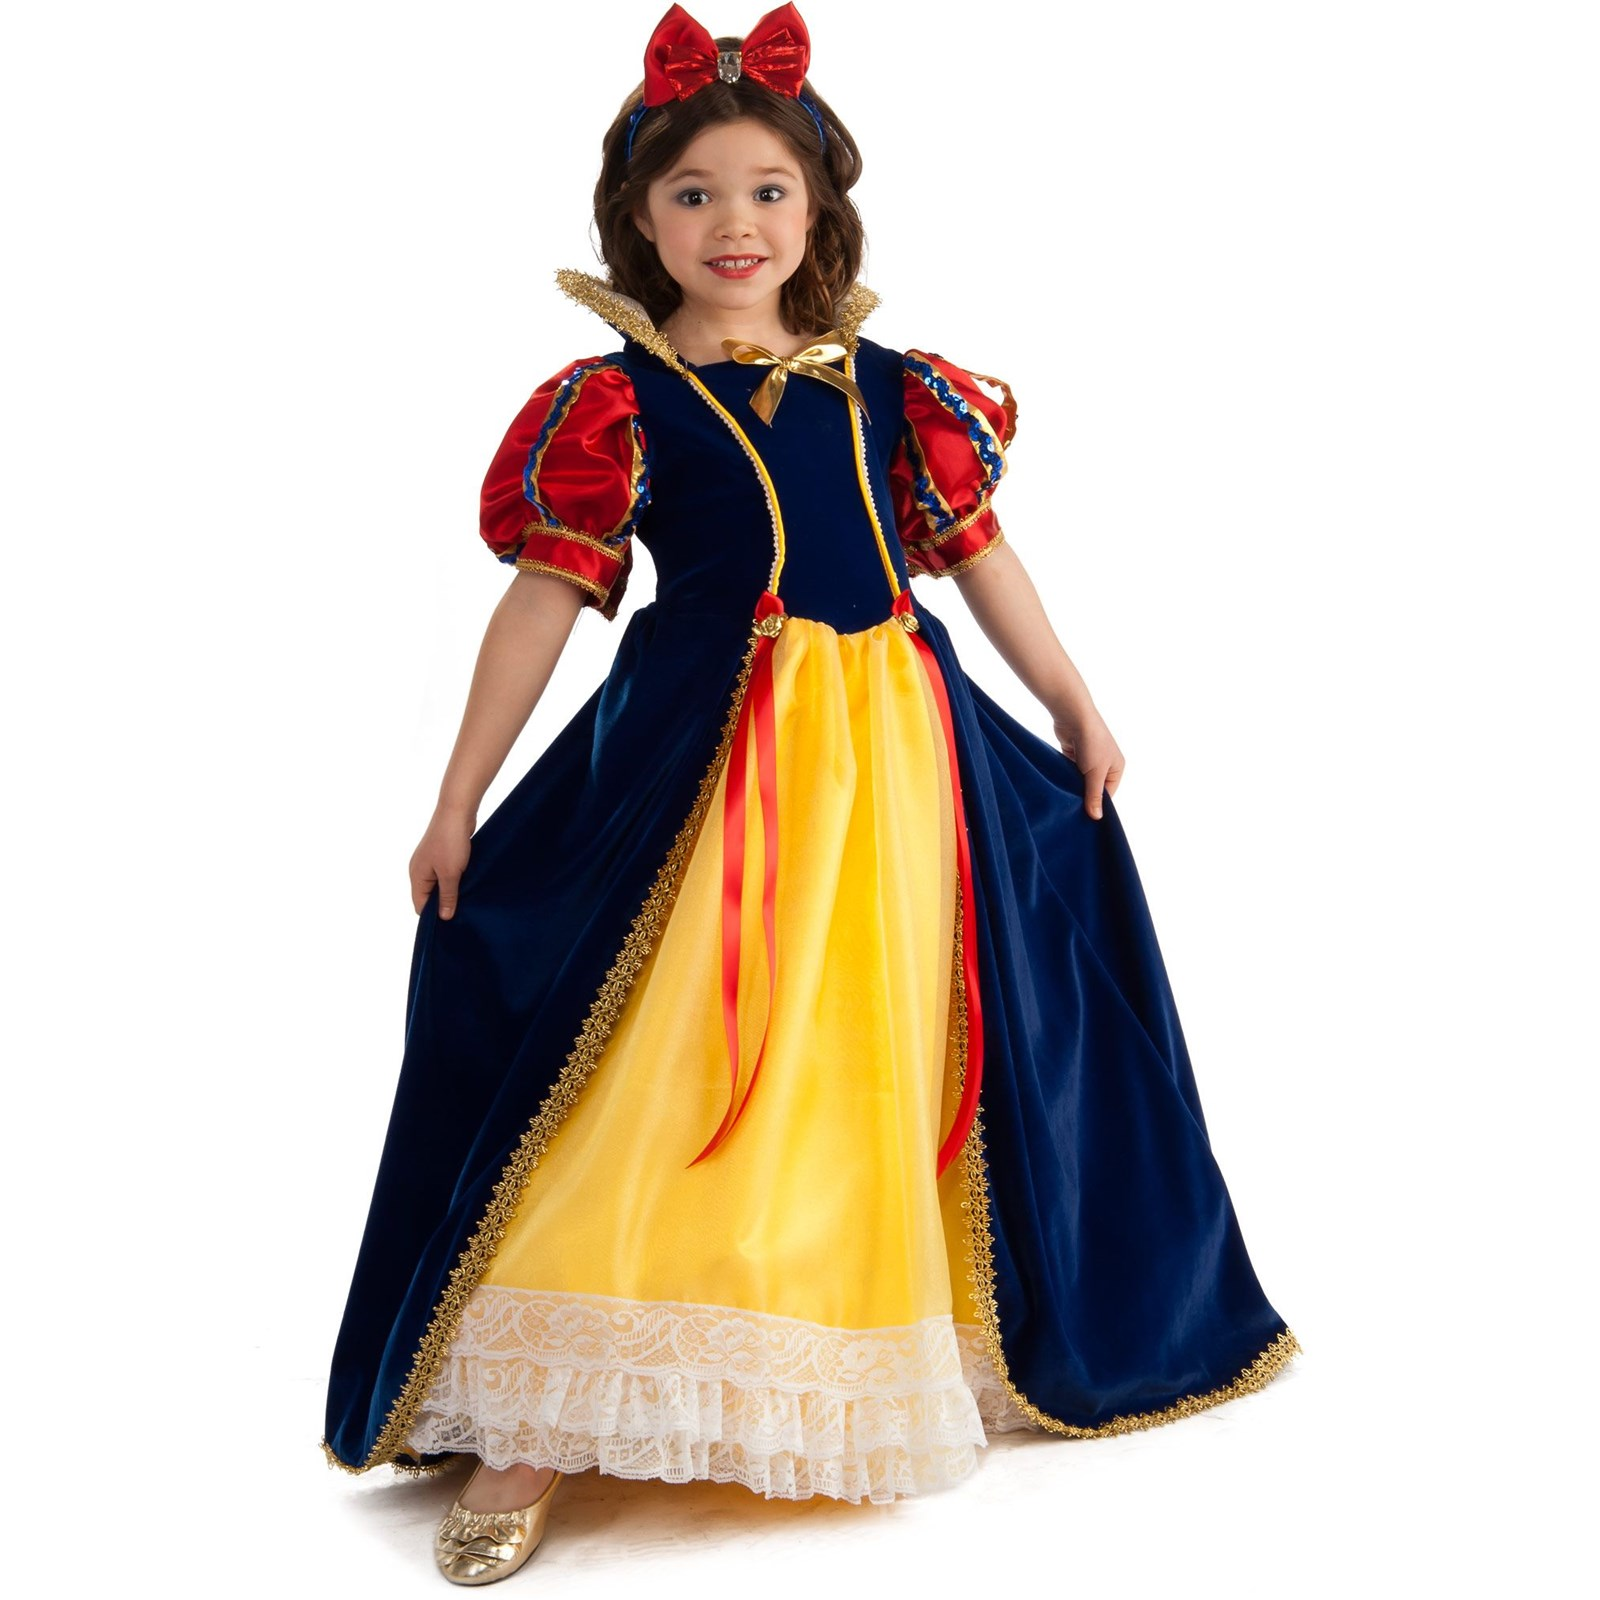 Enchanted Princess Costume for Girls by Rubies